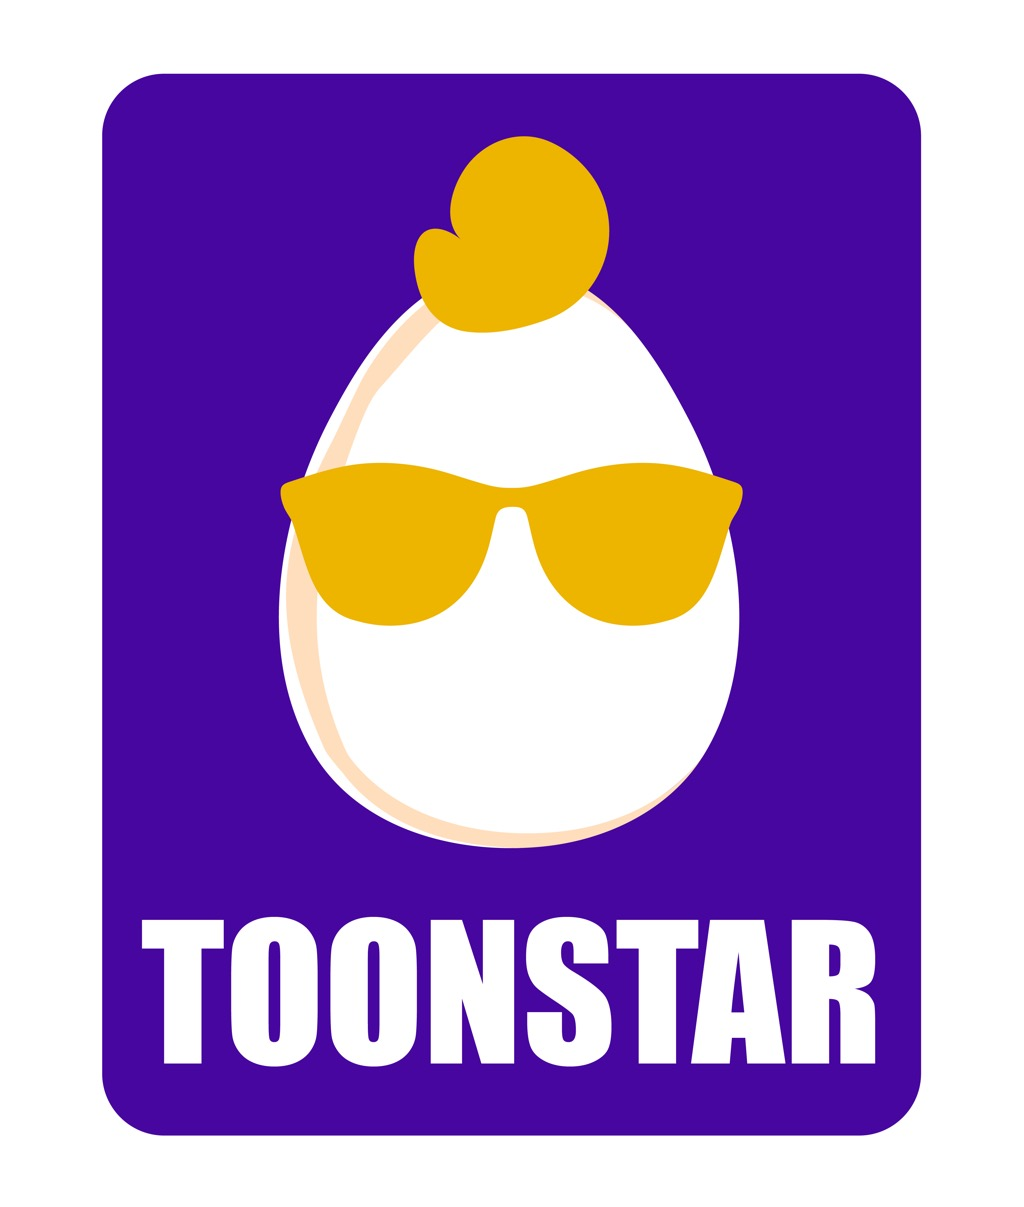 Toonstar Announces Debut of New Series